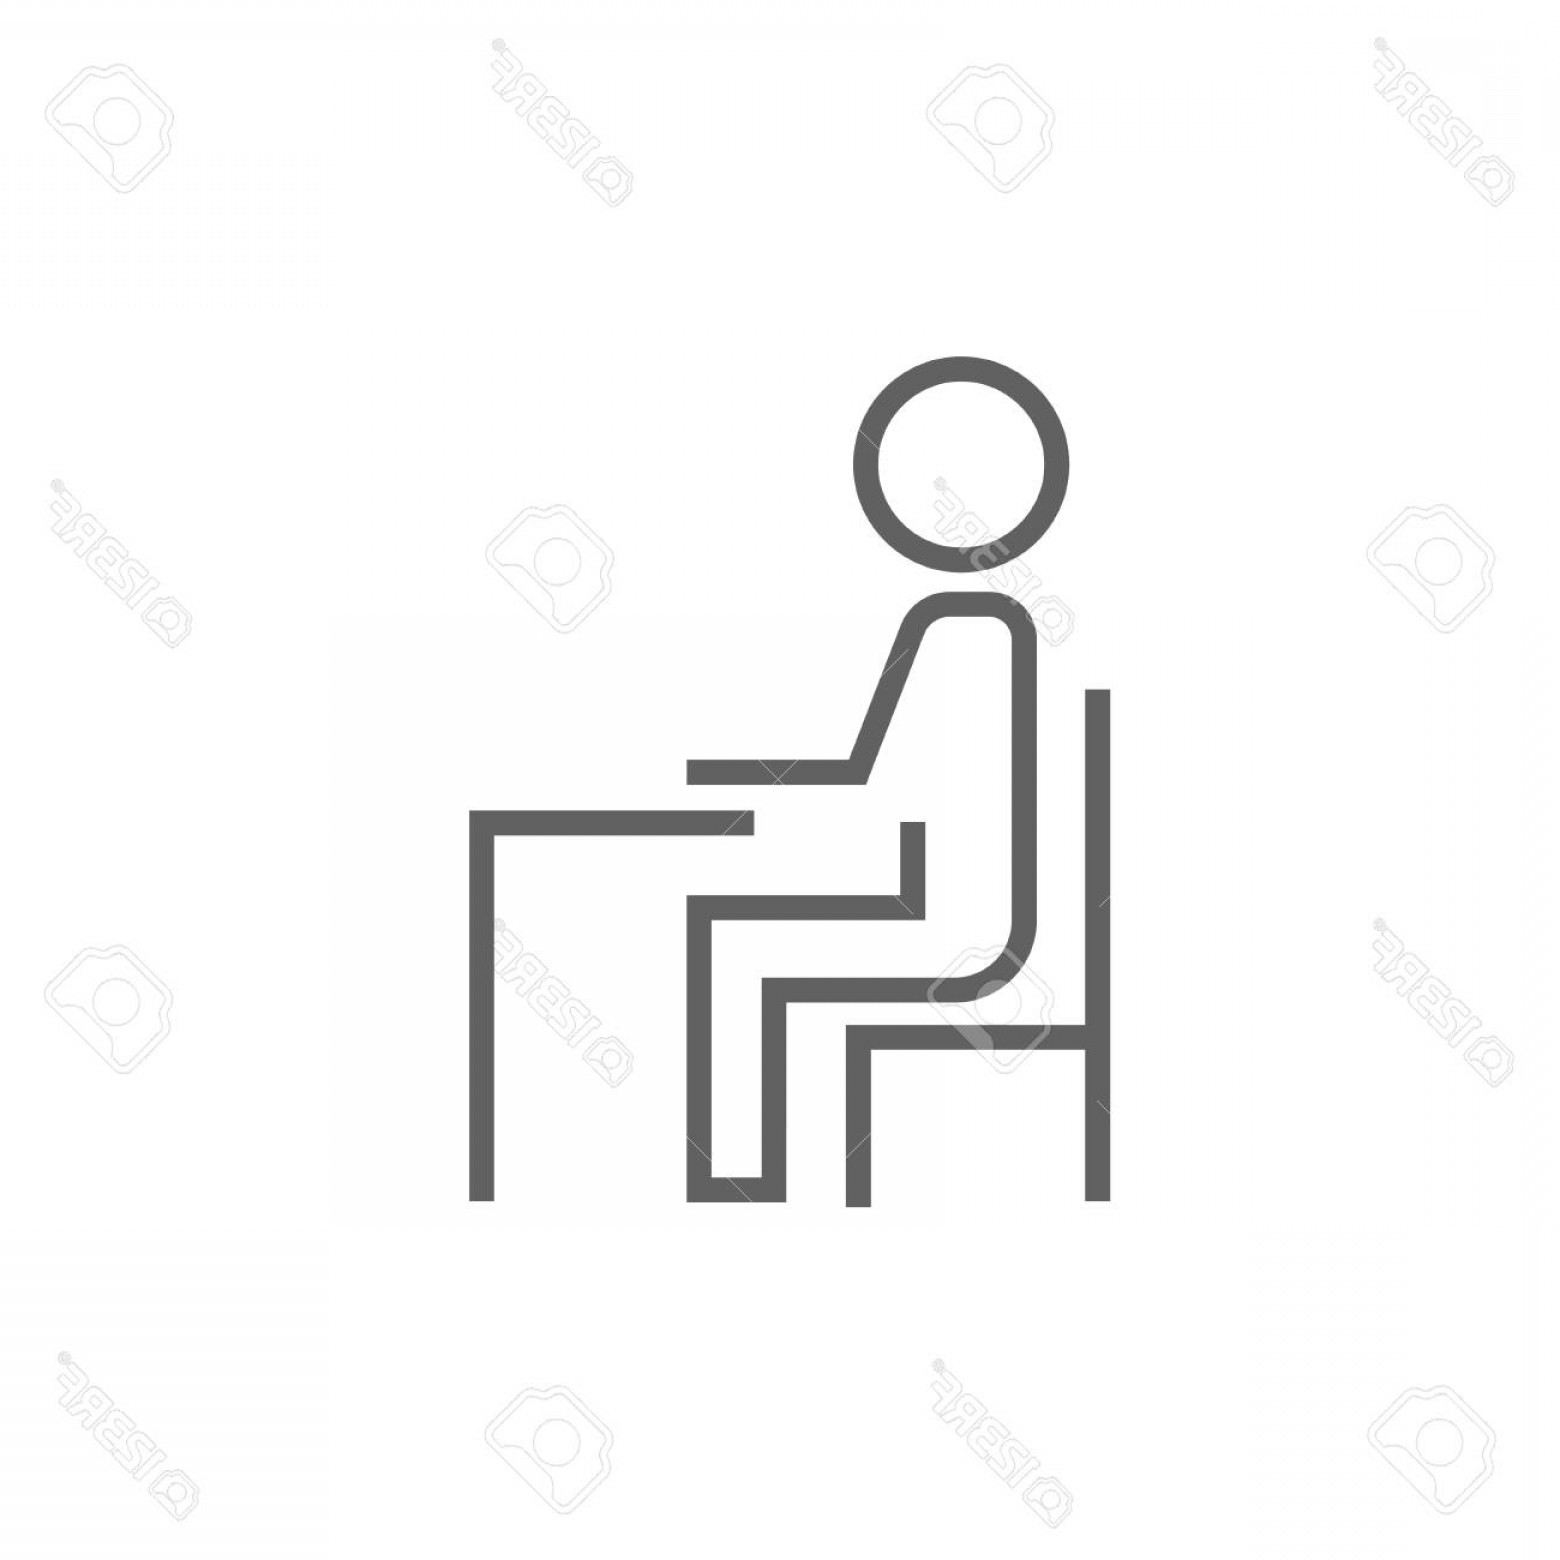 Student Desk Icon Vector: Photostock Vector Student Sitting On Chair At The Desk Thick Line Icon With Pointed Corners And Edges For Web Mobile A